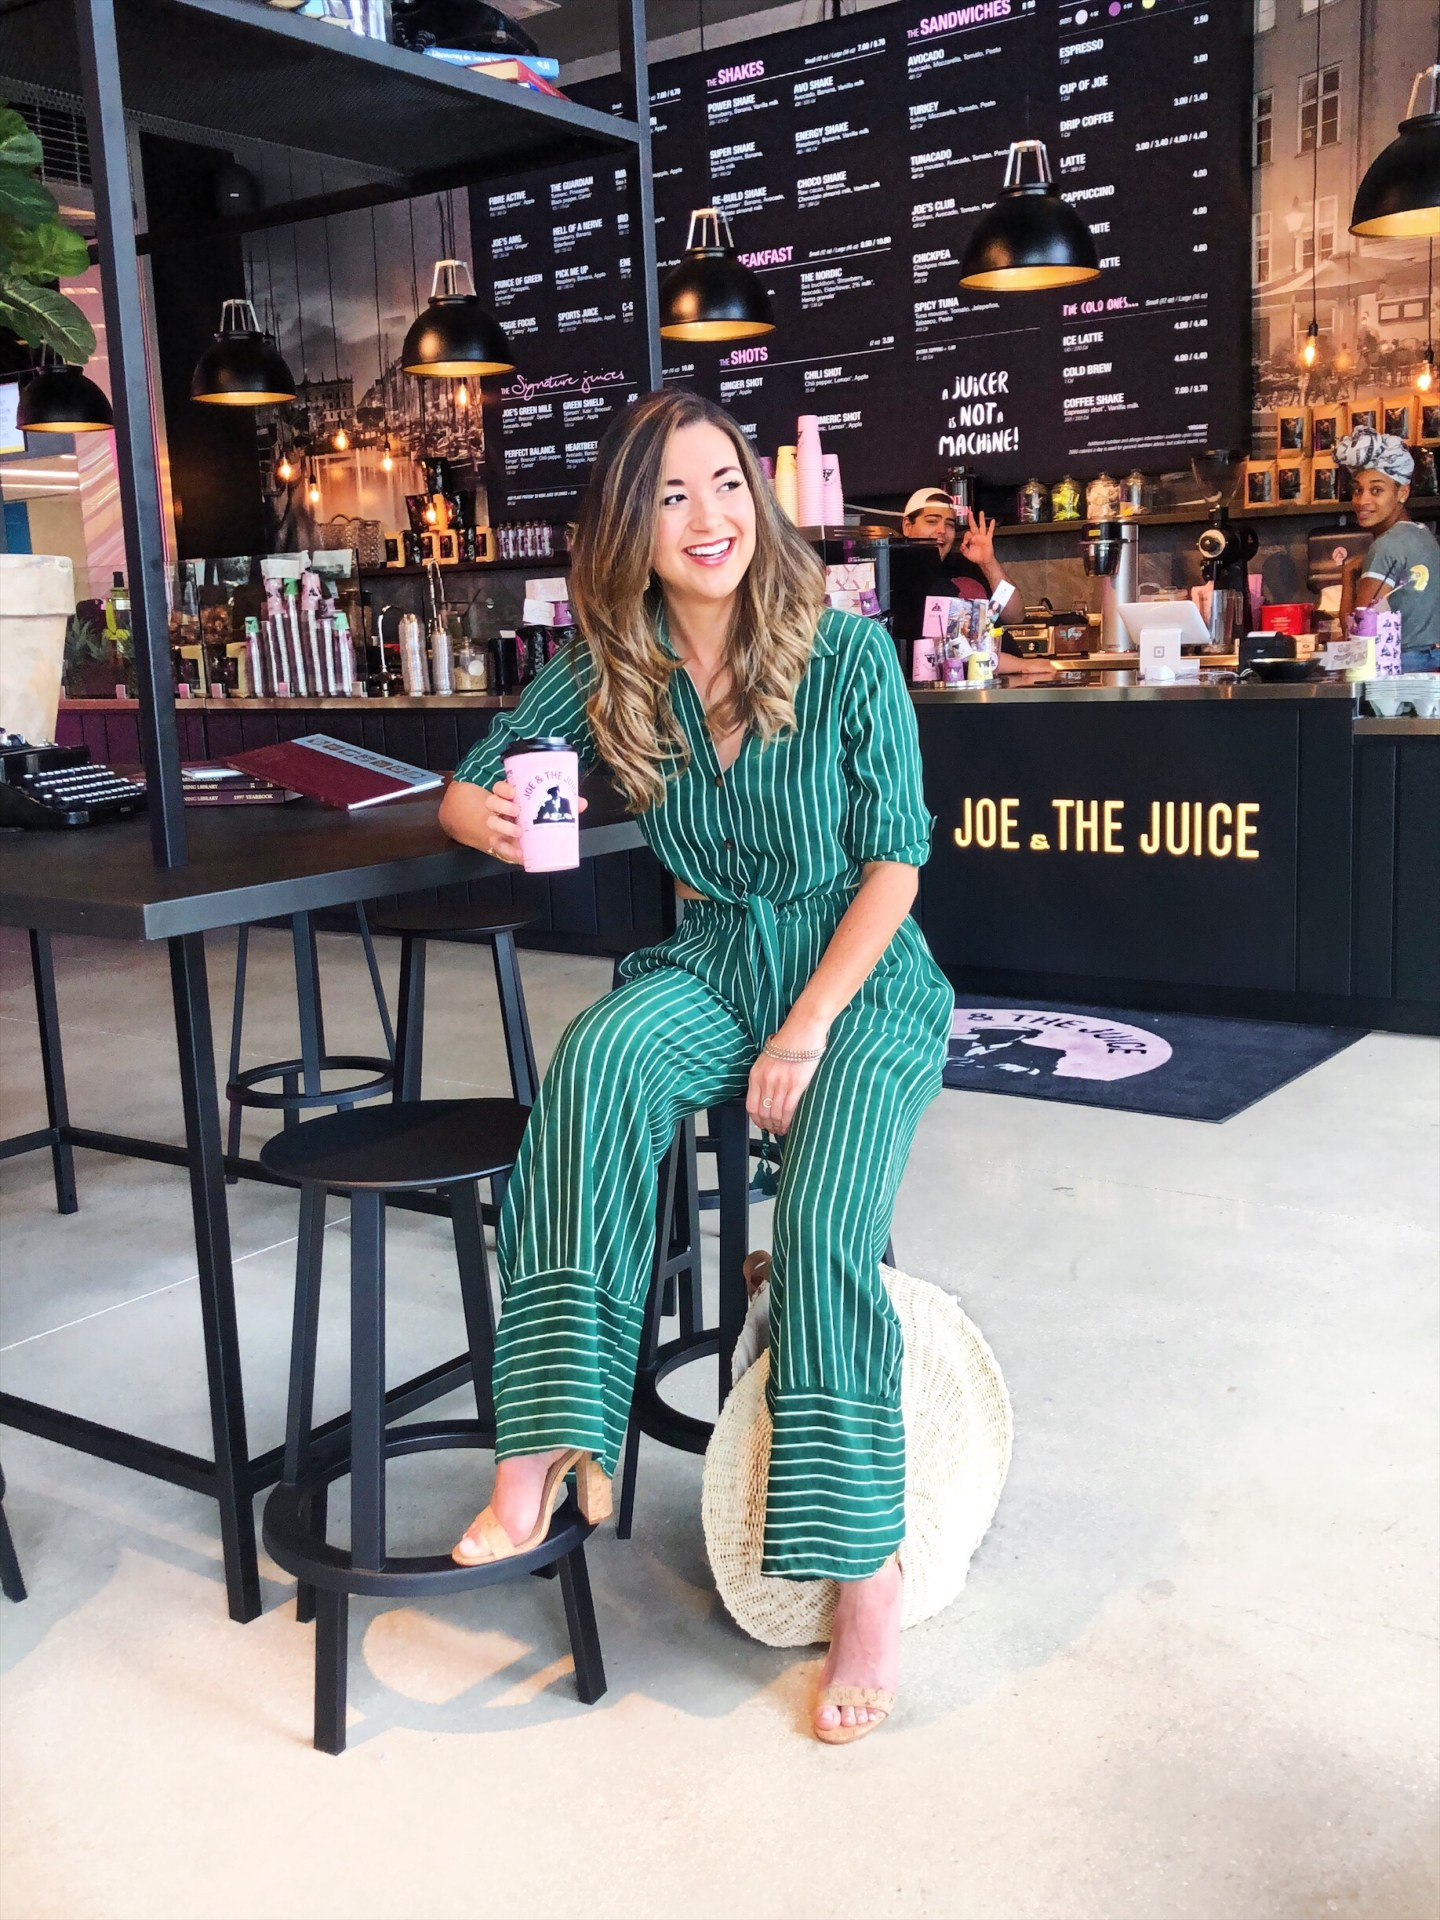 What to Do in West Palm The Brightline station in West Palm Beach is conveniently located in City Place, so there's plenty to do! We decided to head over to Restoration Hardware to check out their restaurant and enjoy a day of window shopping.